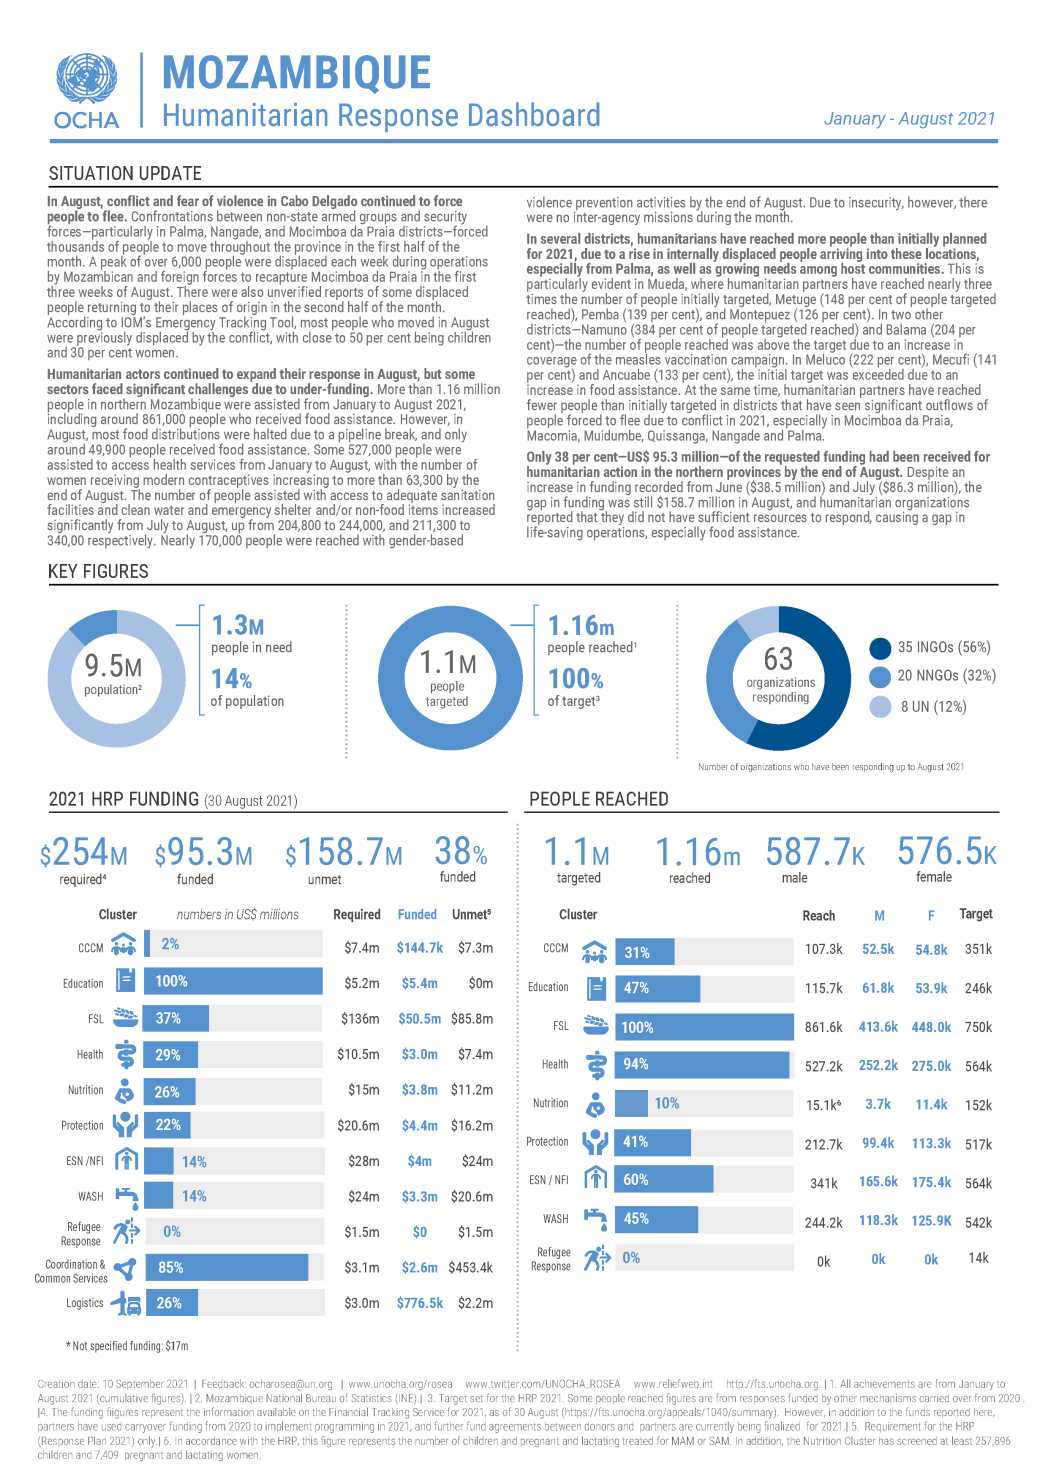 Mozambique Humanitarian Response Dashboard (January - August 2021)